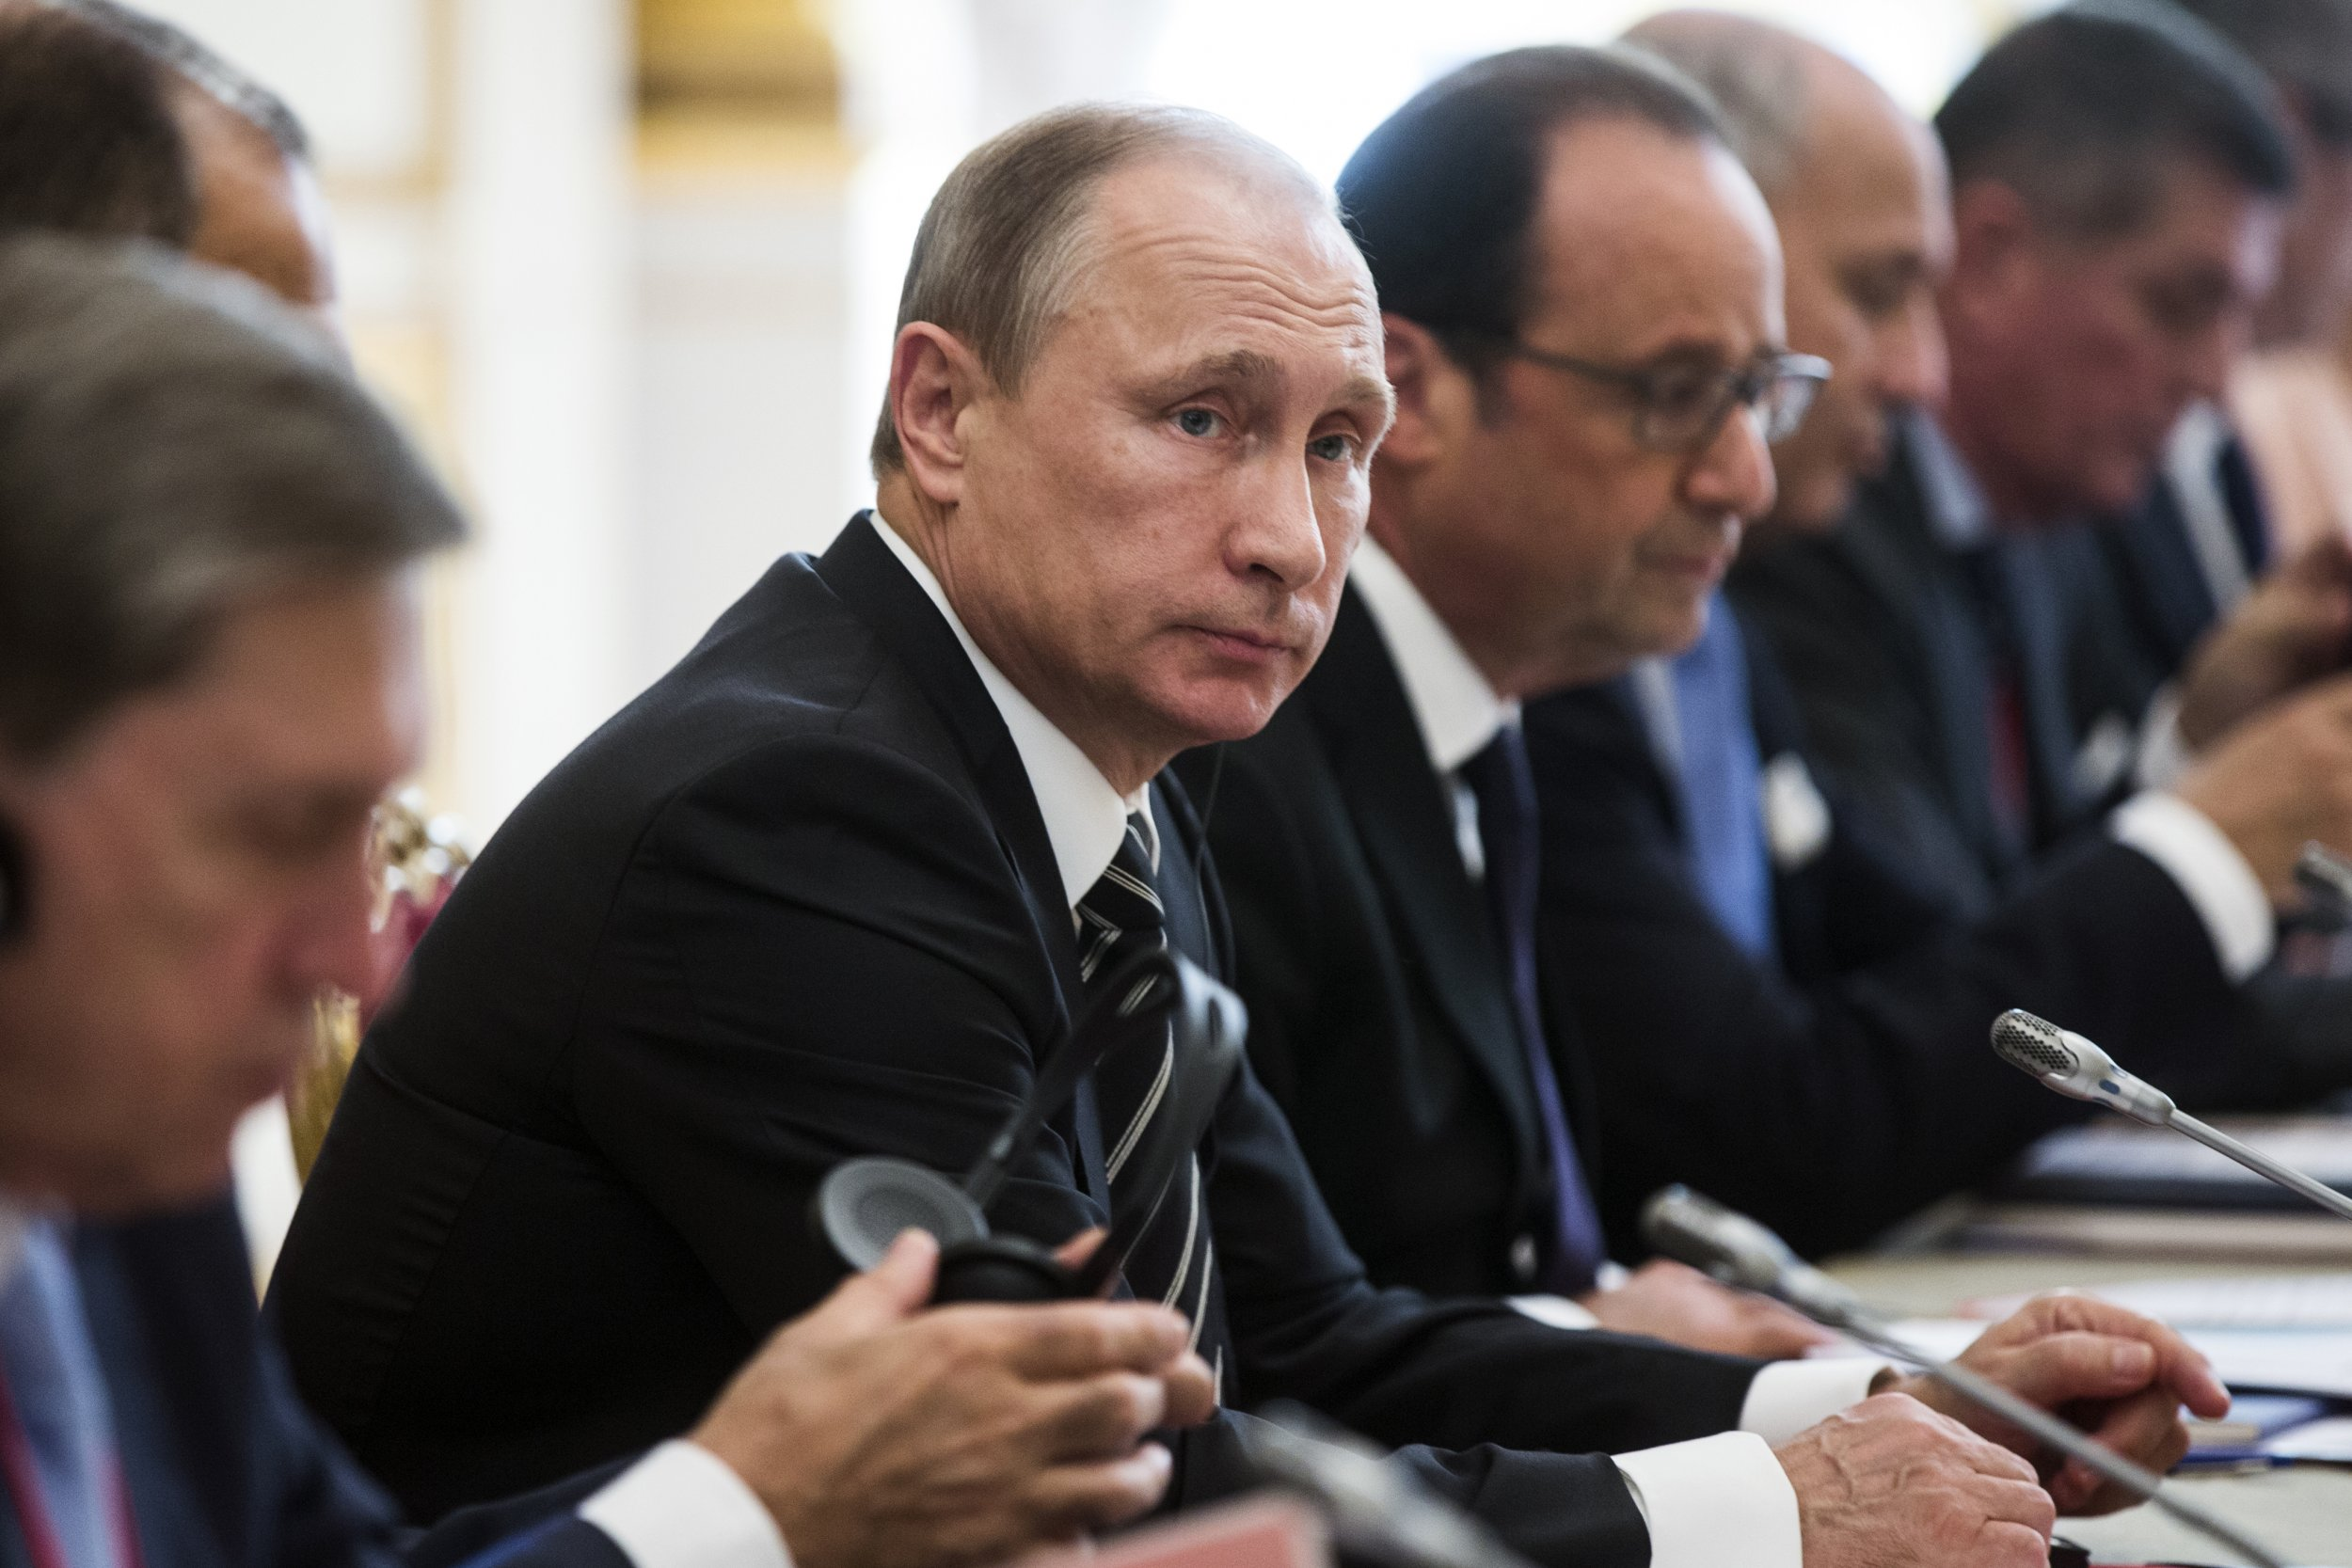 Vladimir Putin with EU Leaders